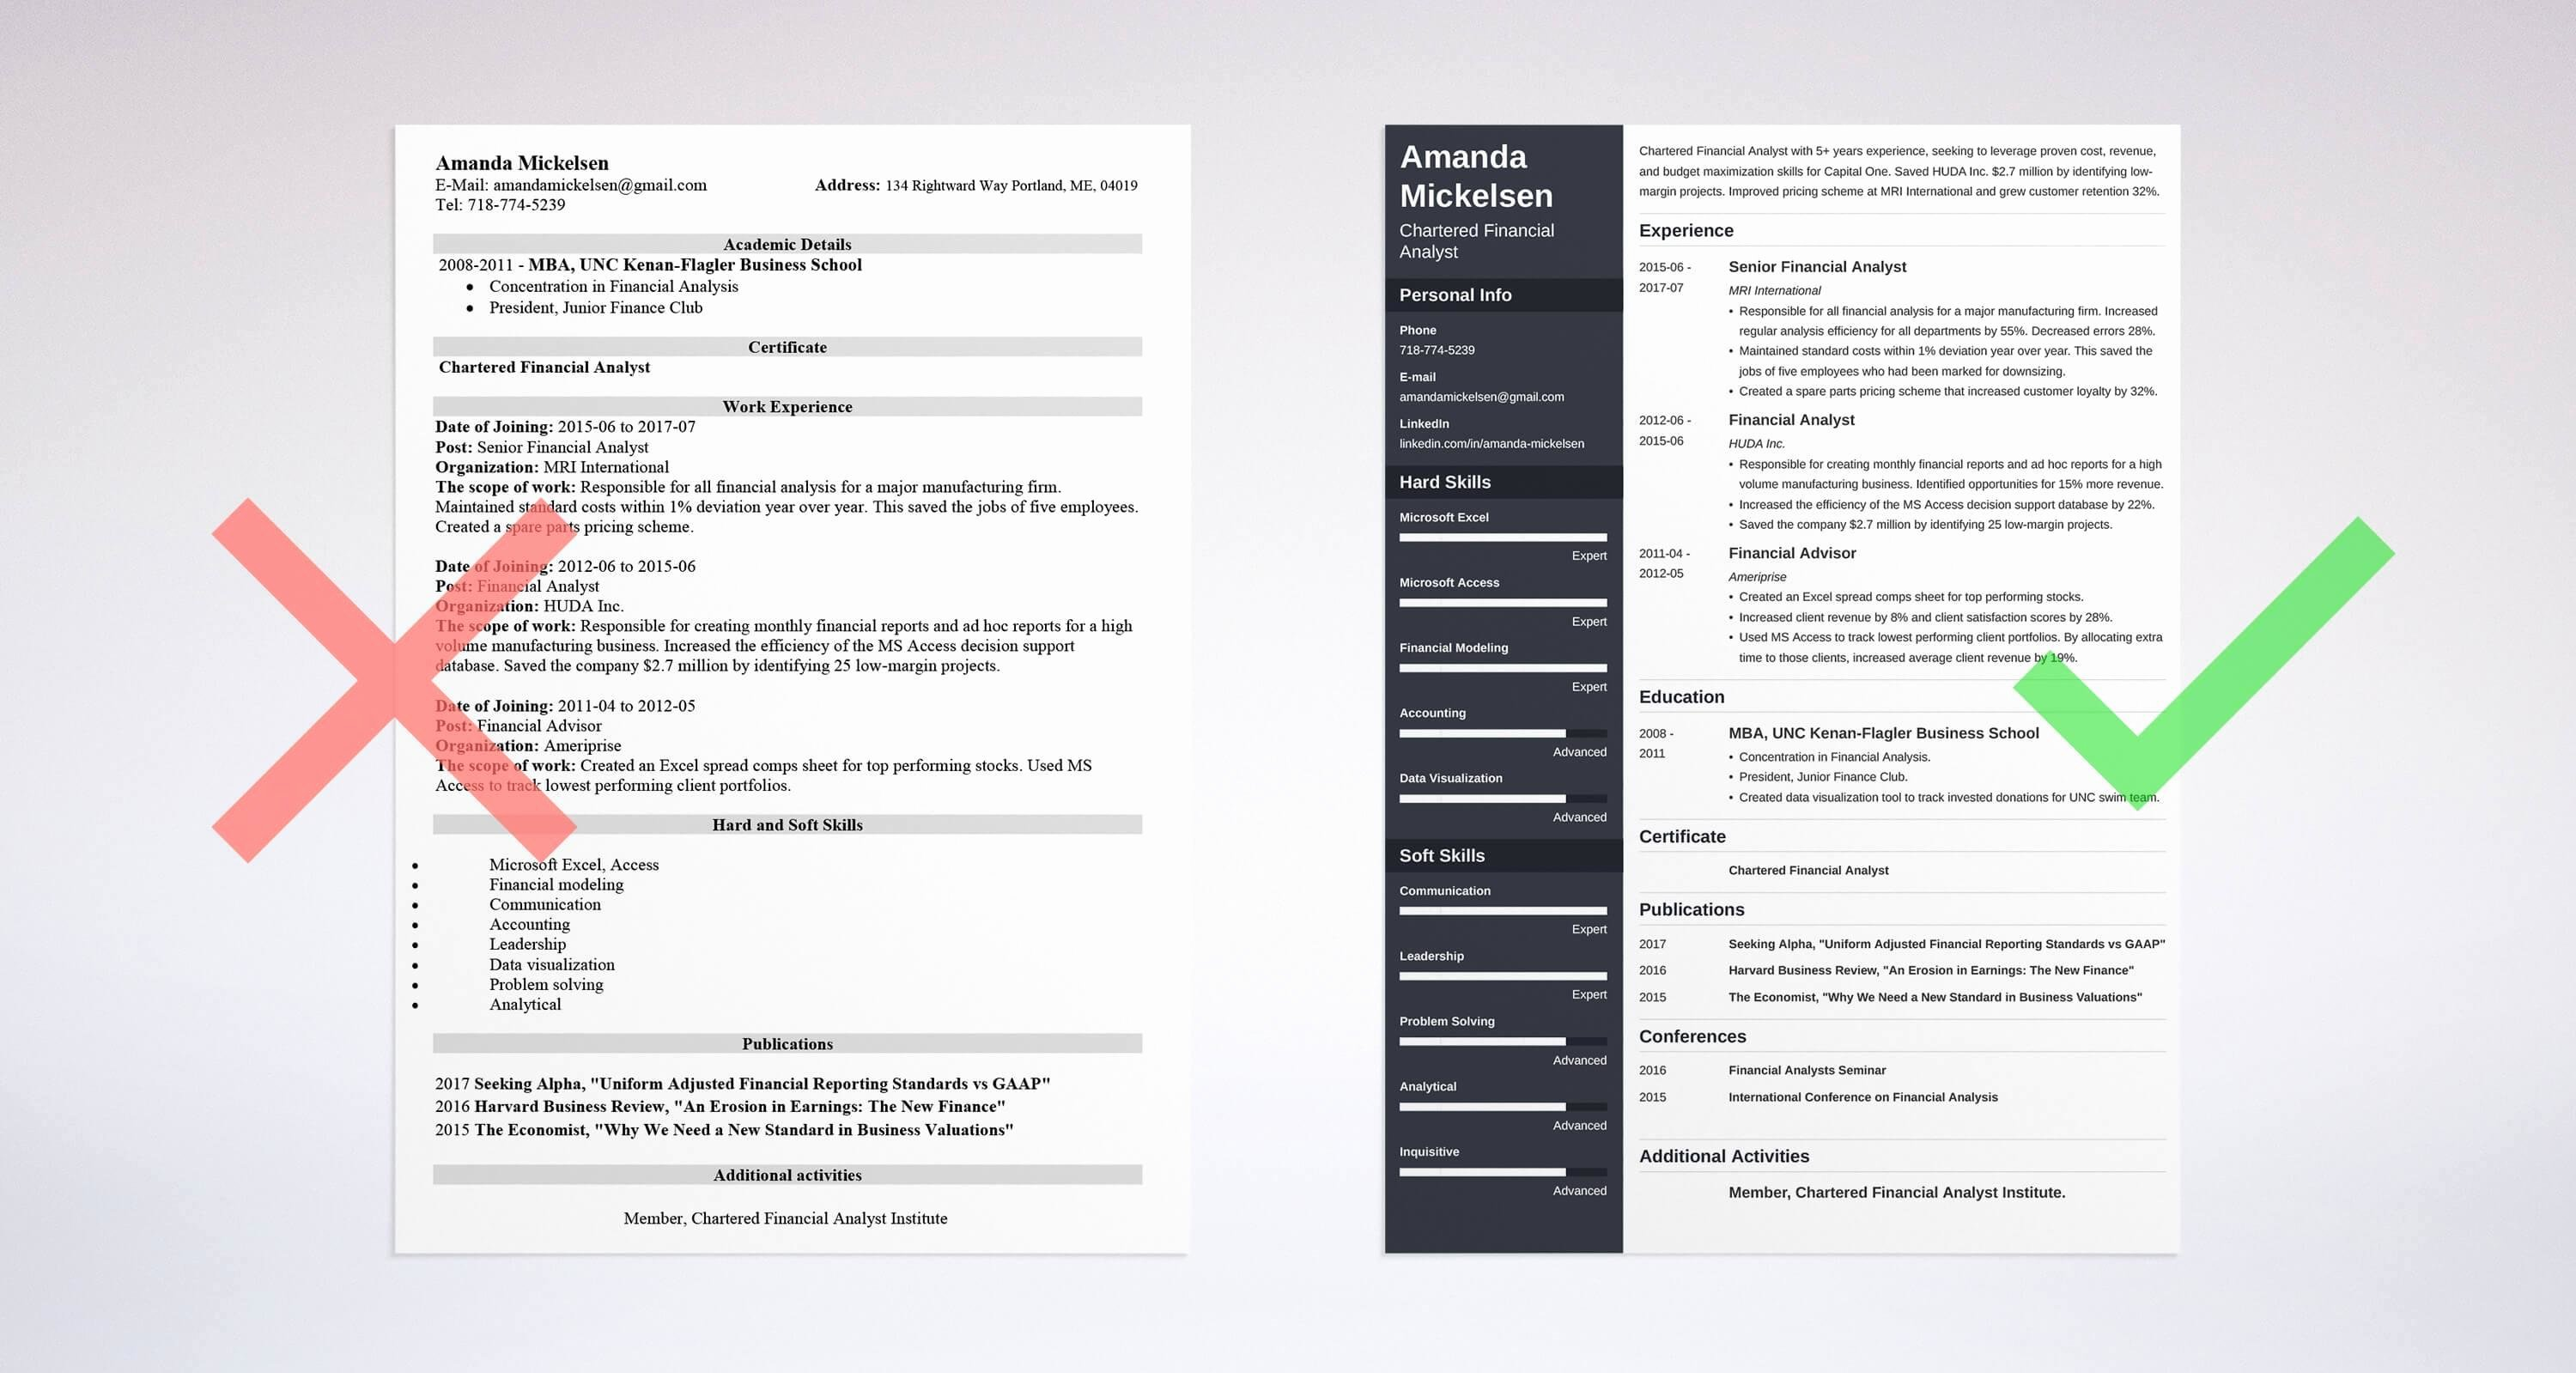 Financial Analyst Resume Template Awesome Financial Analyst Resume Sample & Plete Guide [ 20